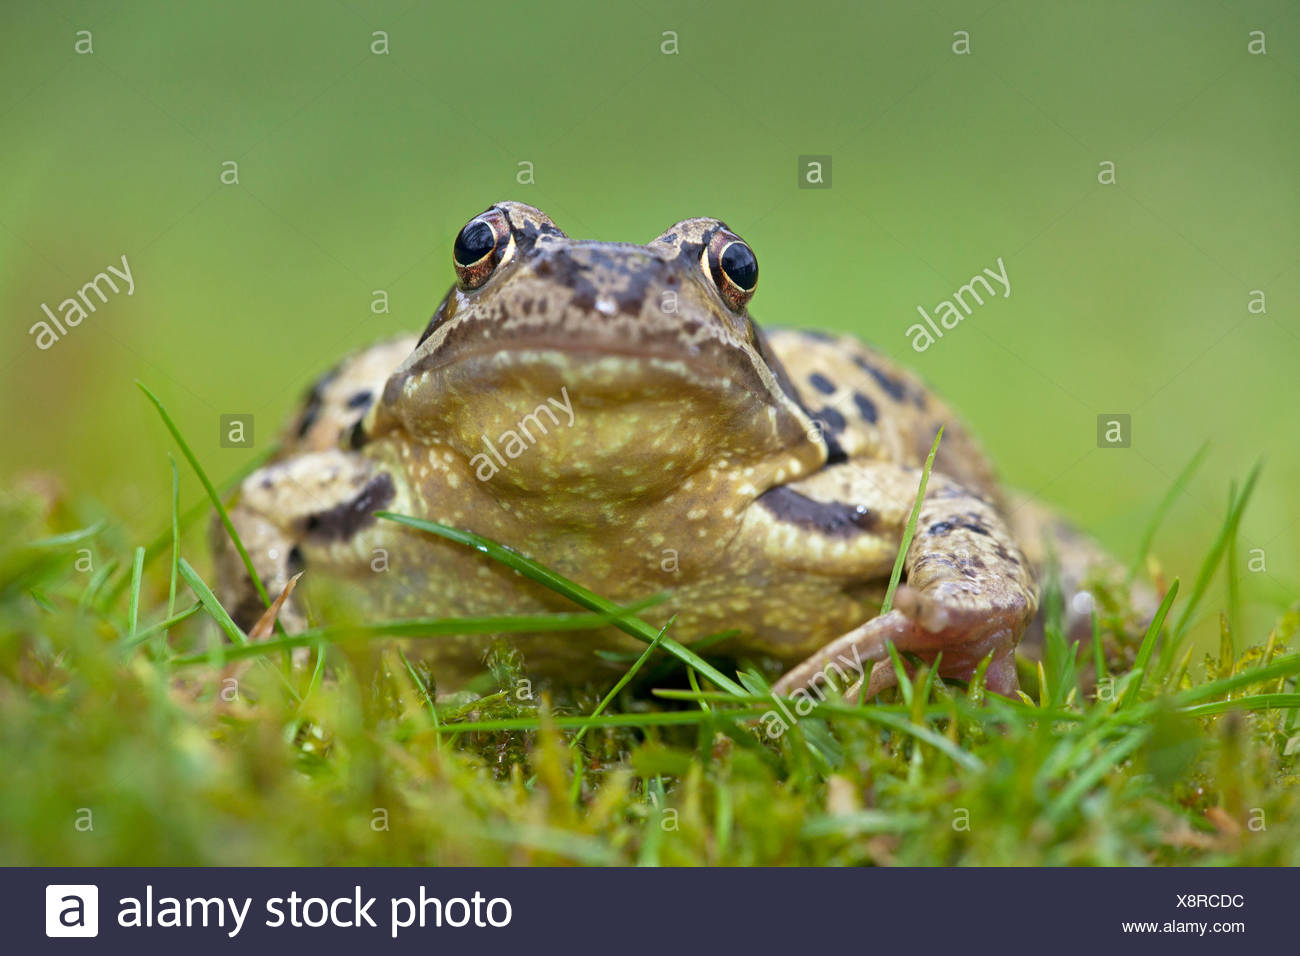 photo of a common frog in green grass with a blurred green foreground and background - Stock Image